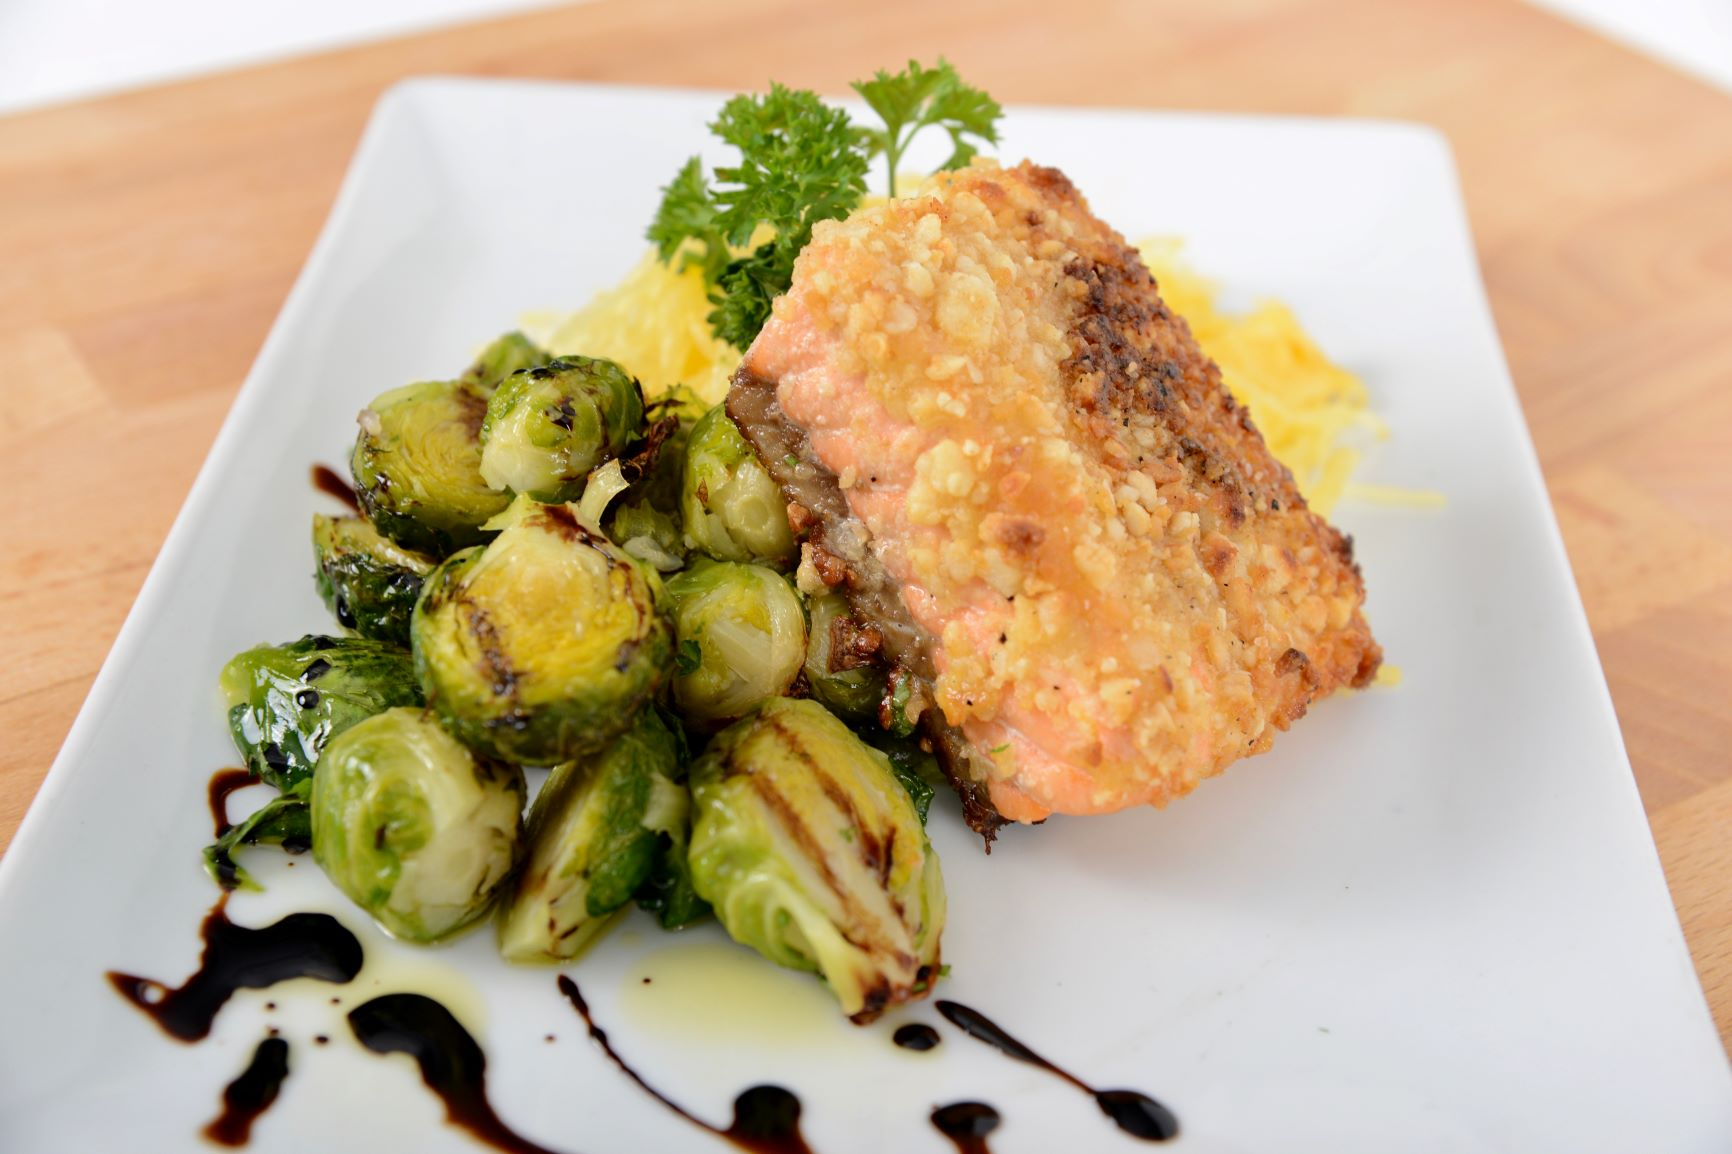 Macadamia Nut Crusted Wild Isles Salmon (Monday 4/6 Delivery)